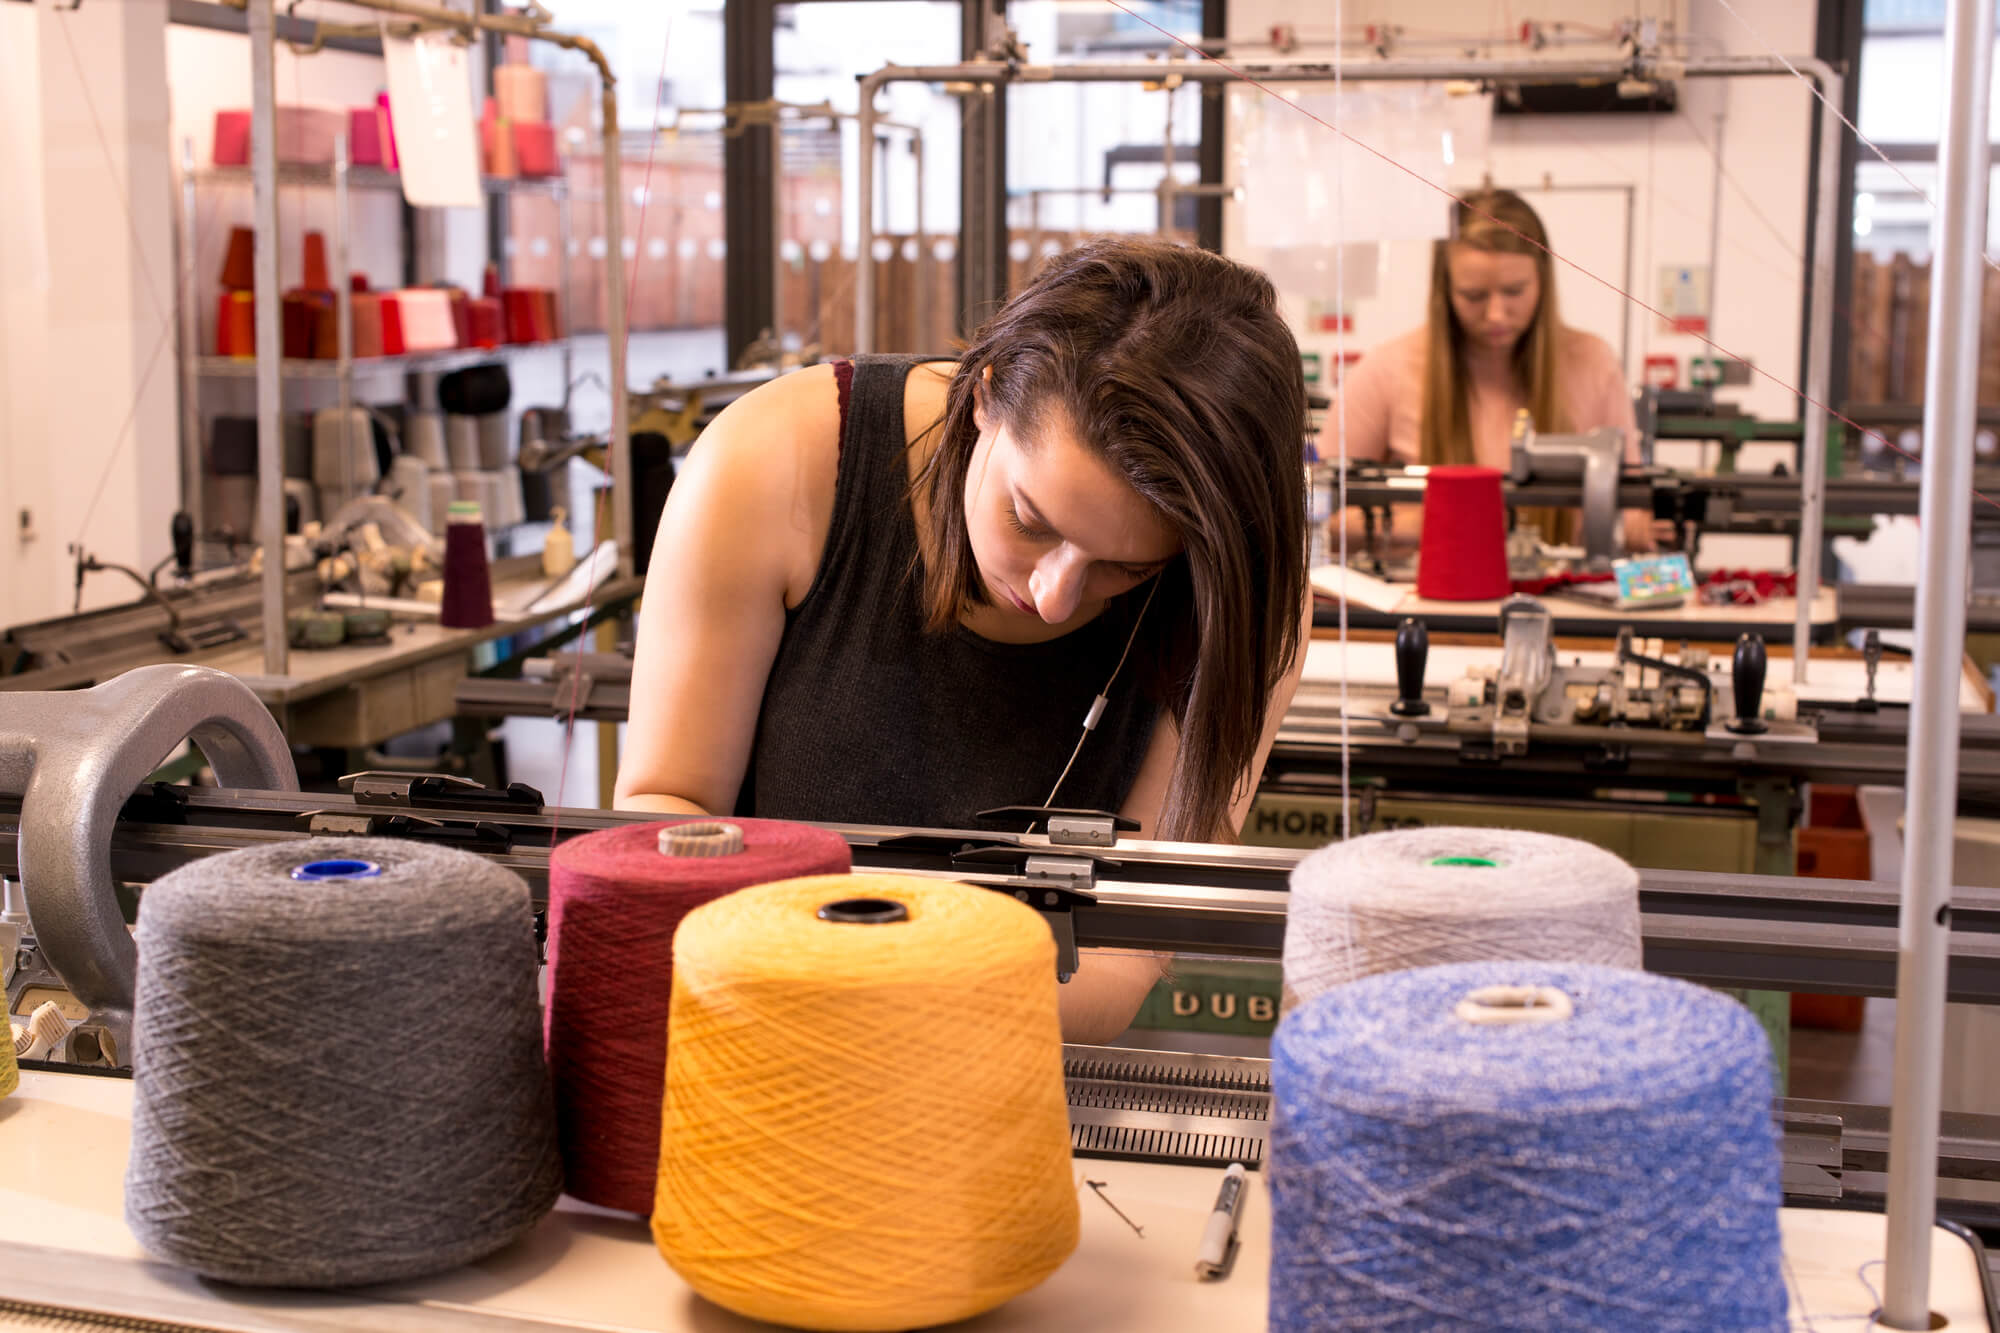 A student working in the Fashion and Textiles studio at the Chandos Pole Street site